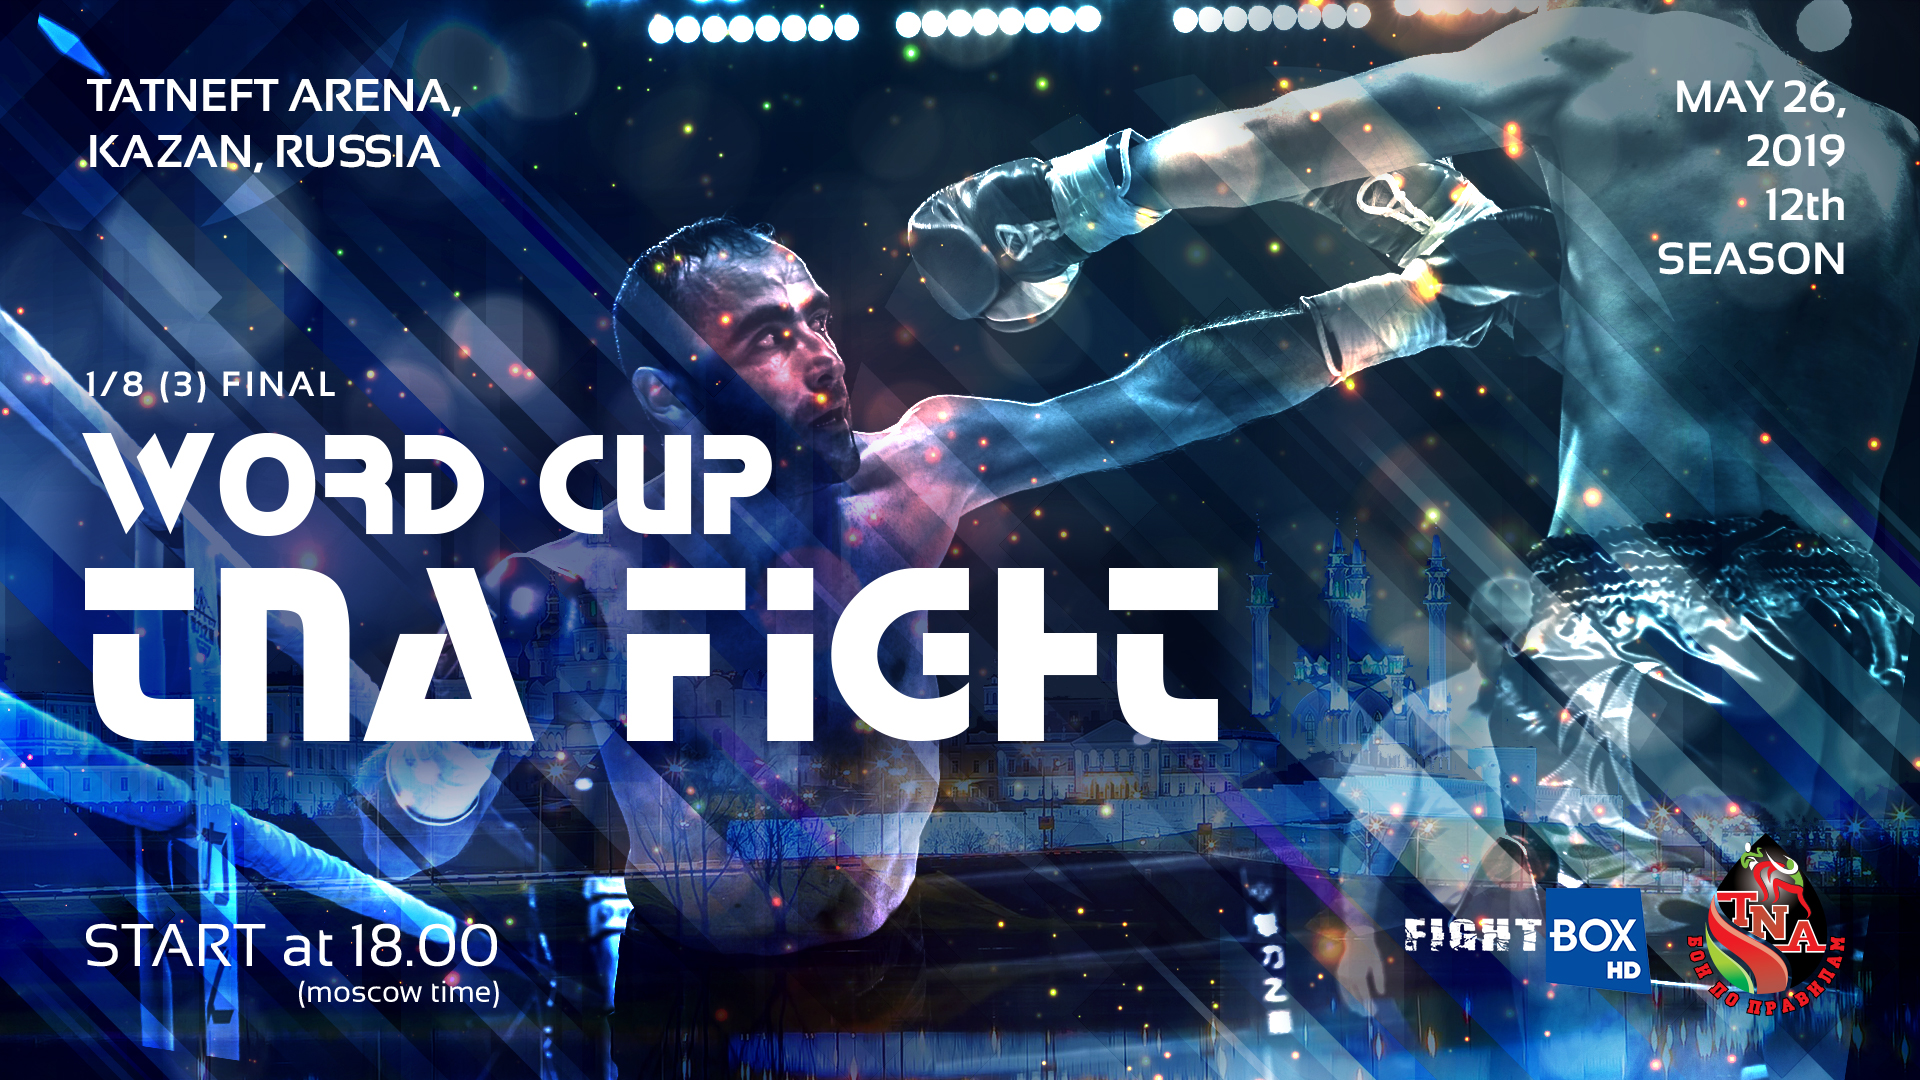 Tatneft Cup Kickboxing - LIVE from Kazan, Russia 26.05.2019